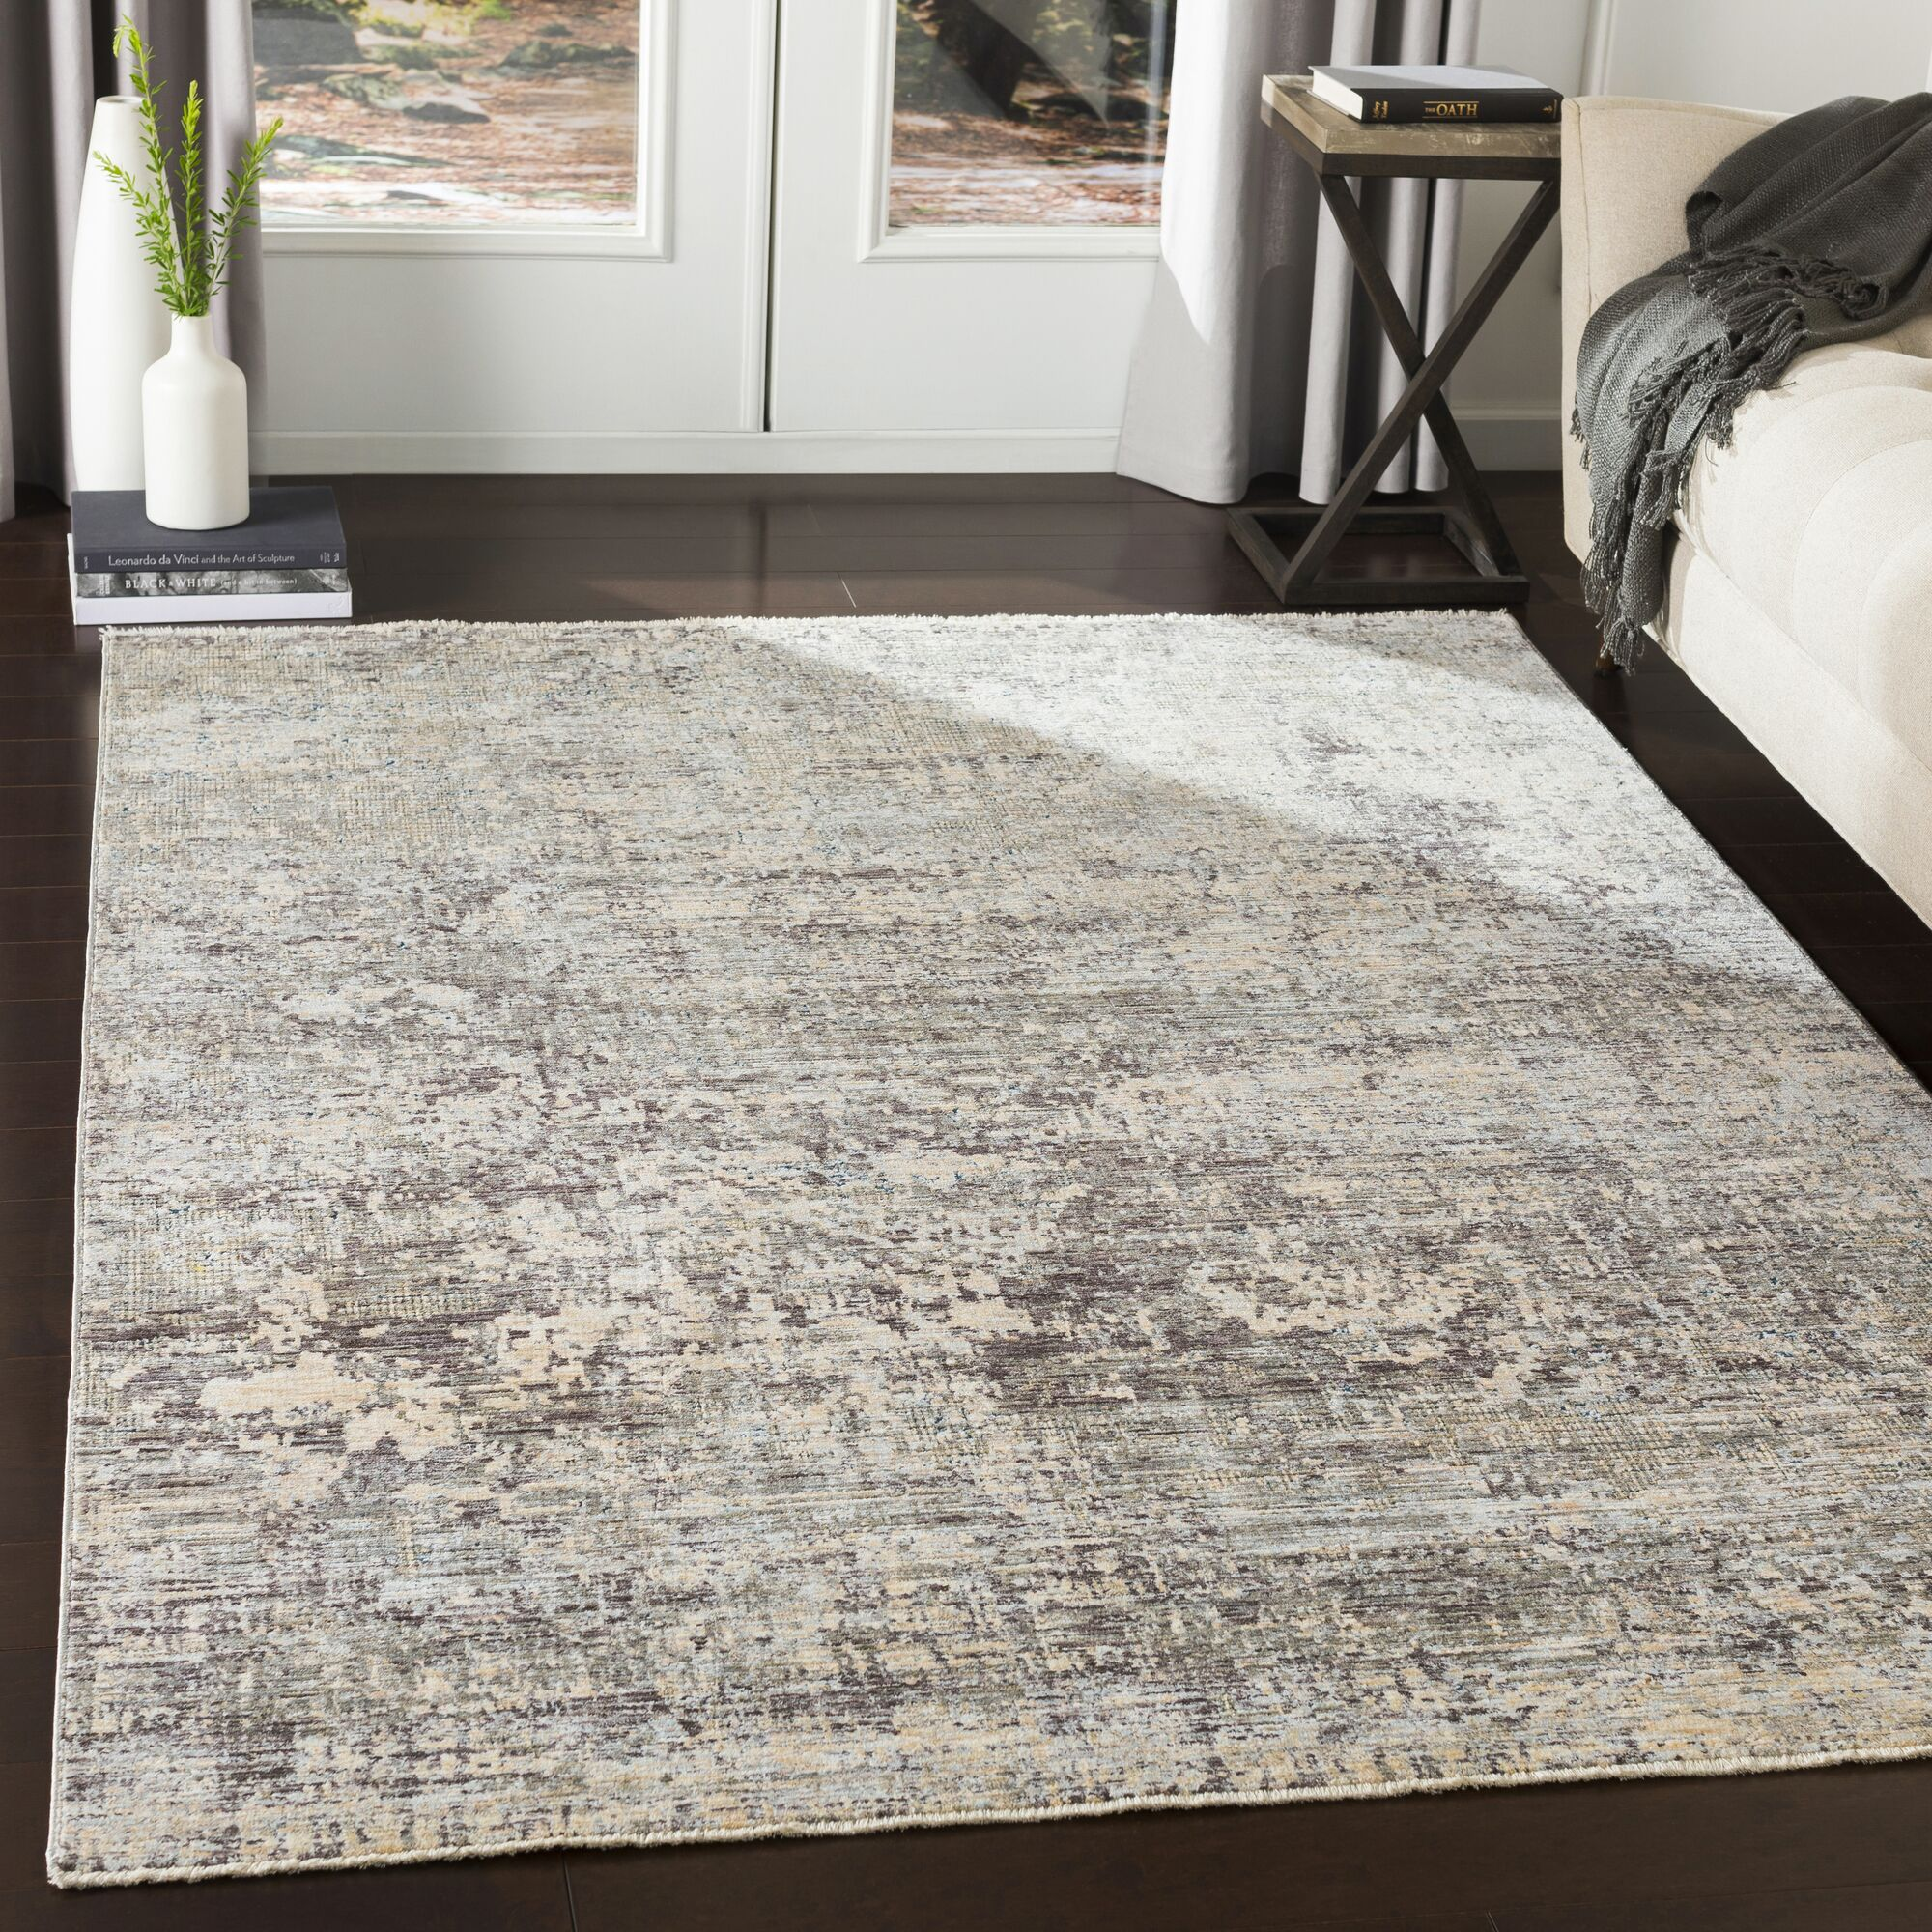 Mckeel Distressed Abstract Pale Blue/Gray Area Rug Rug Size: Rectangle 9' x 13'1